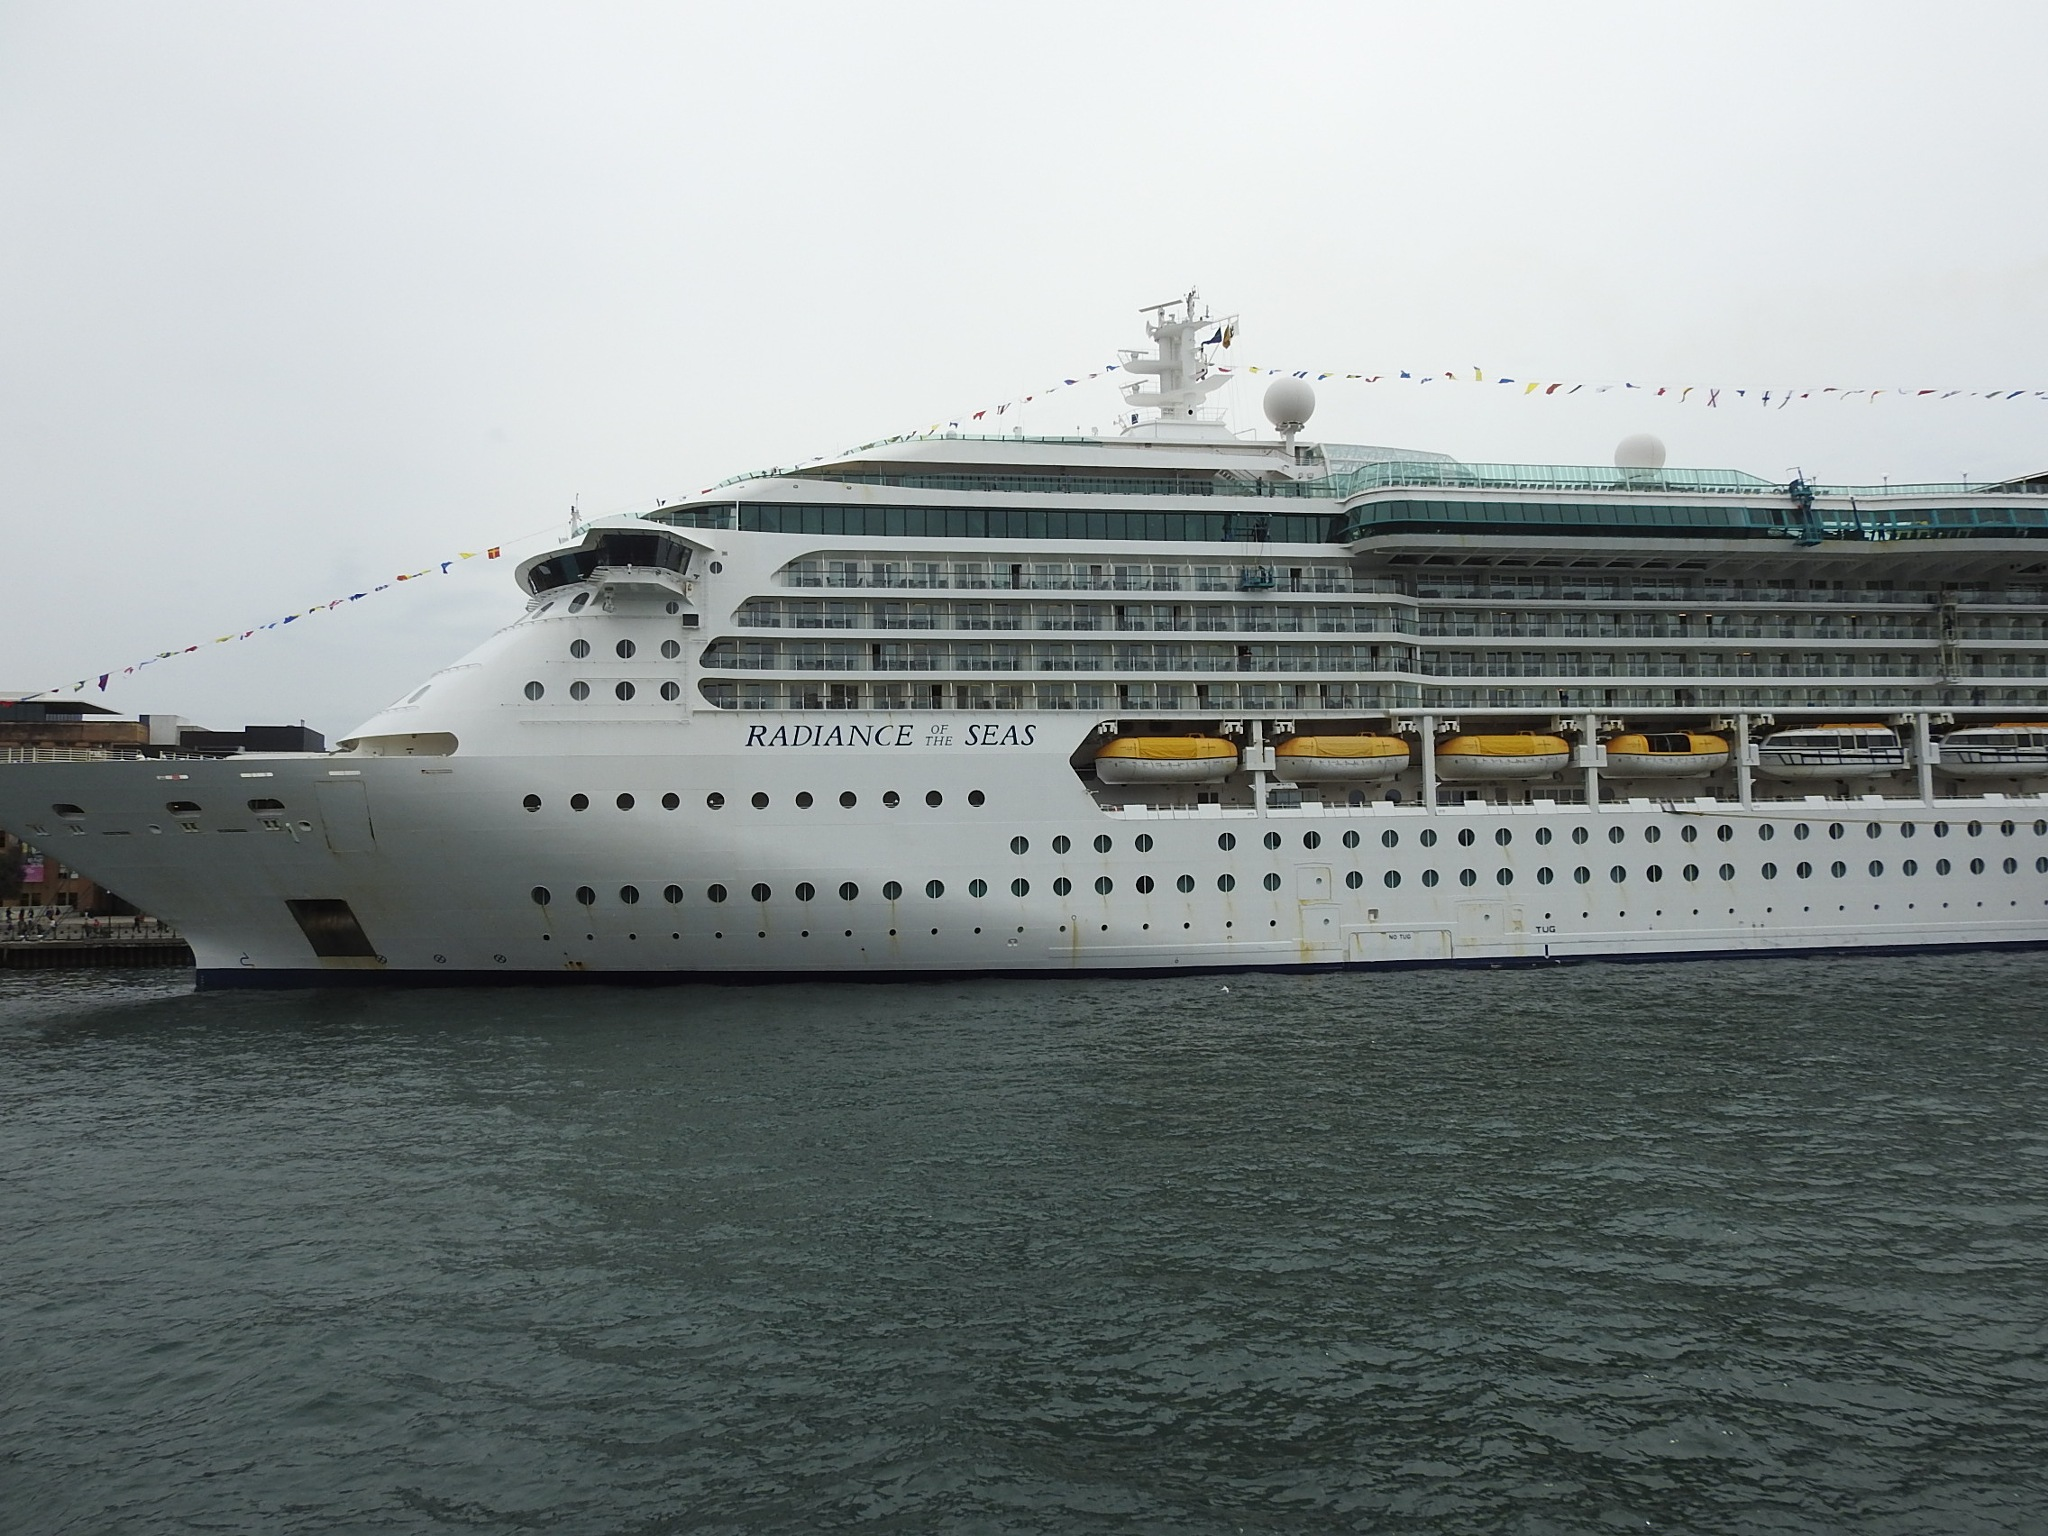 Radiance of the seas. by Michael De St Pern